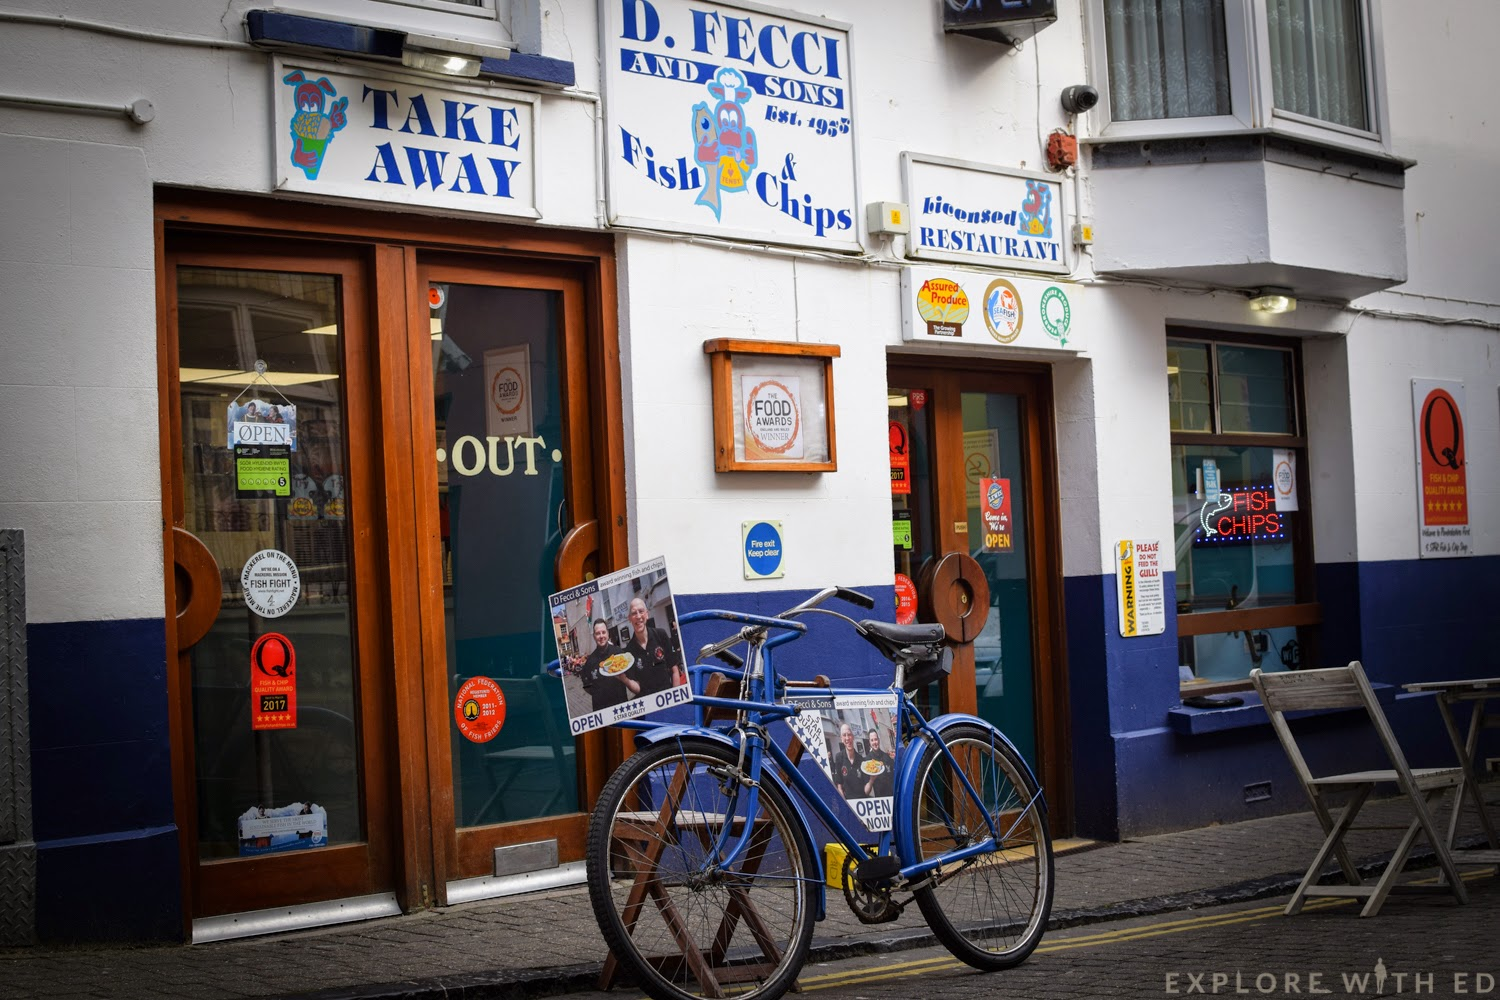 Fish and chip takeaways in Tenby